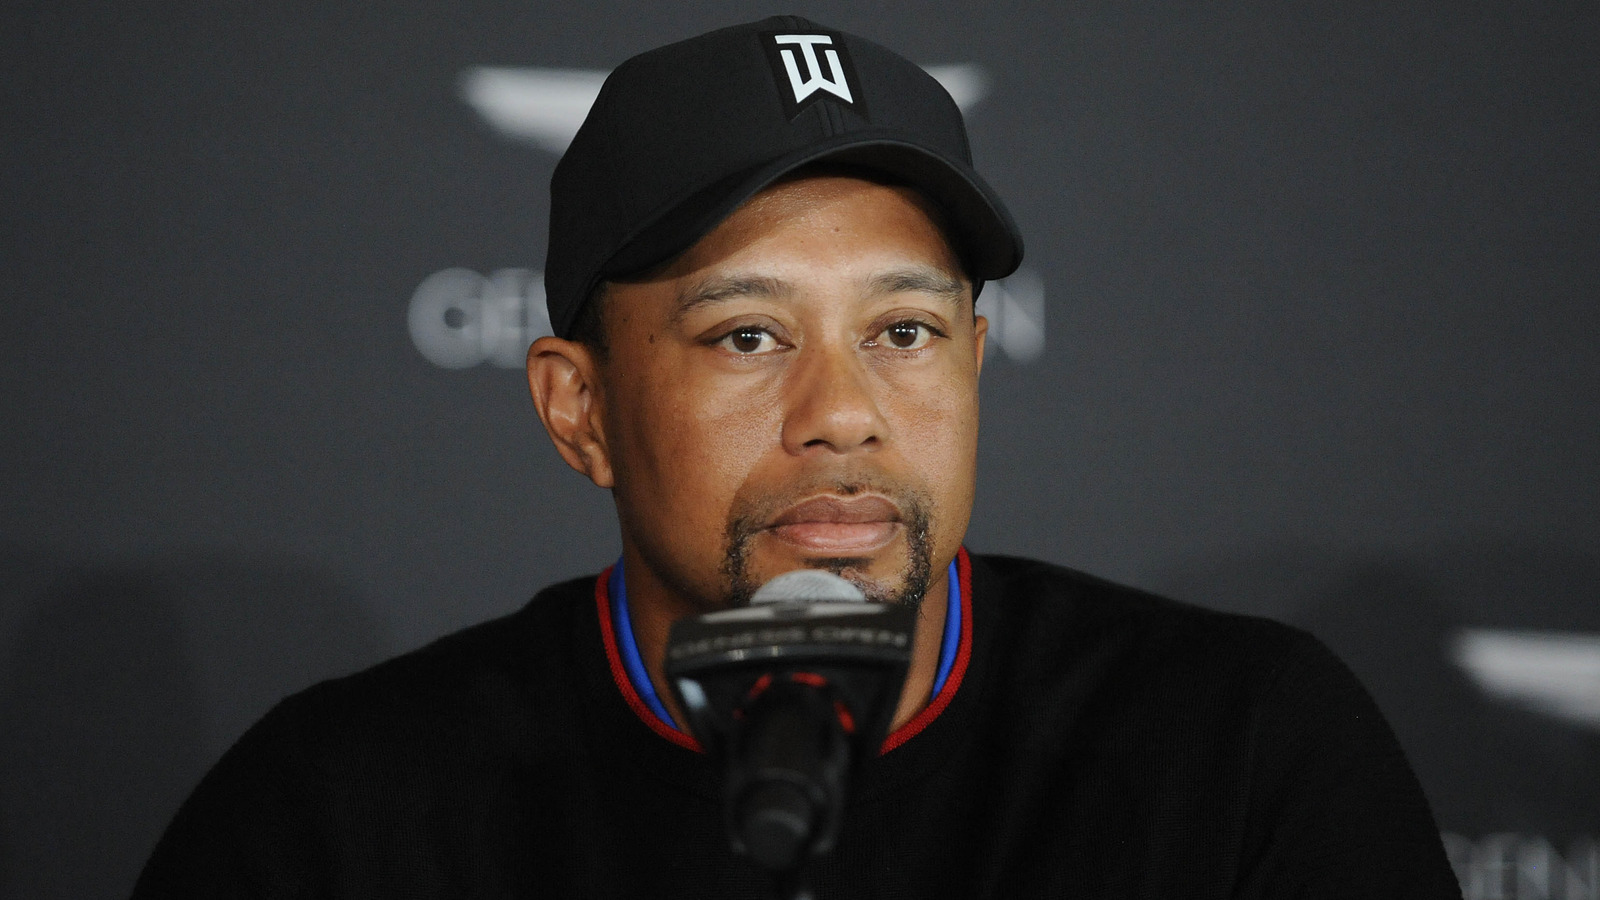 woods, vonn among victims in nude photo hack | yardbarker